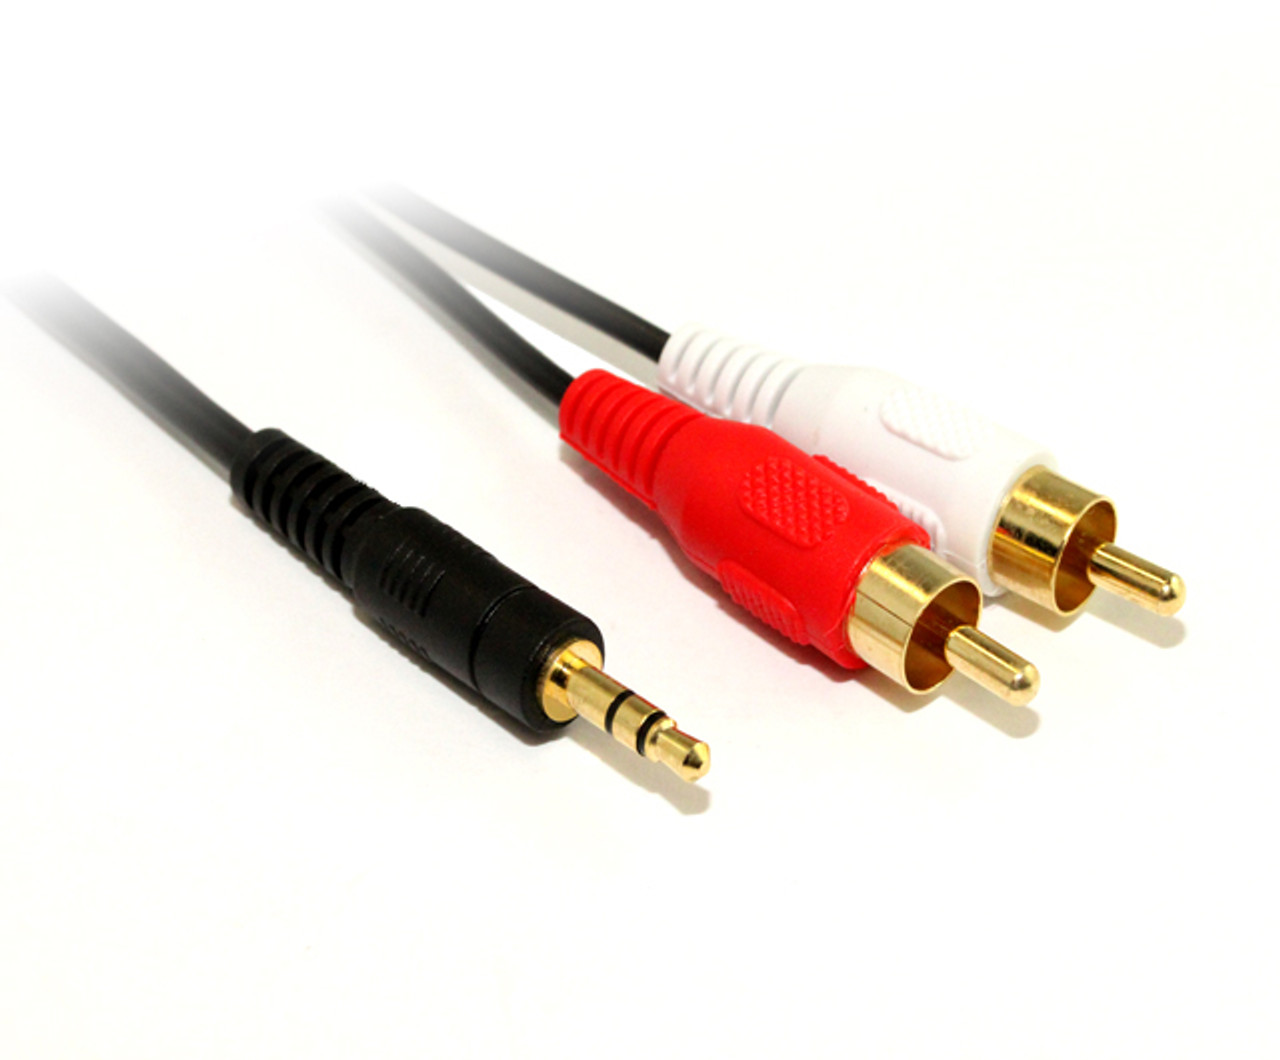 Product image for 10M 3.5MM Plug -2 X RCA Plug Cable | CX Computer Superstore